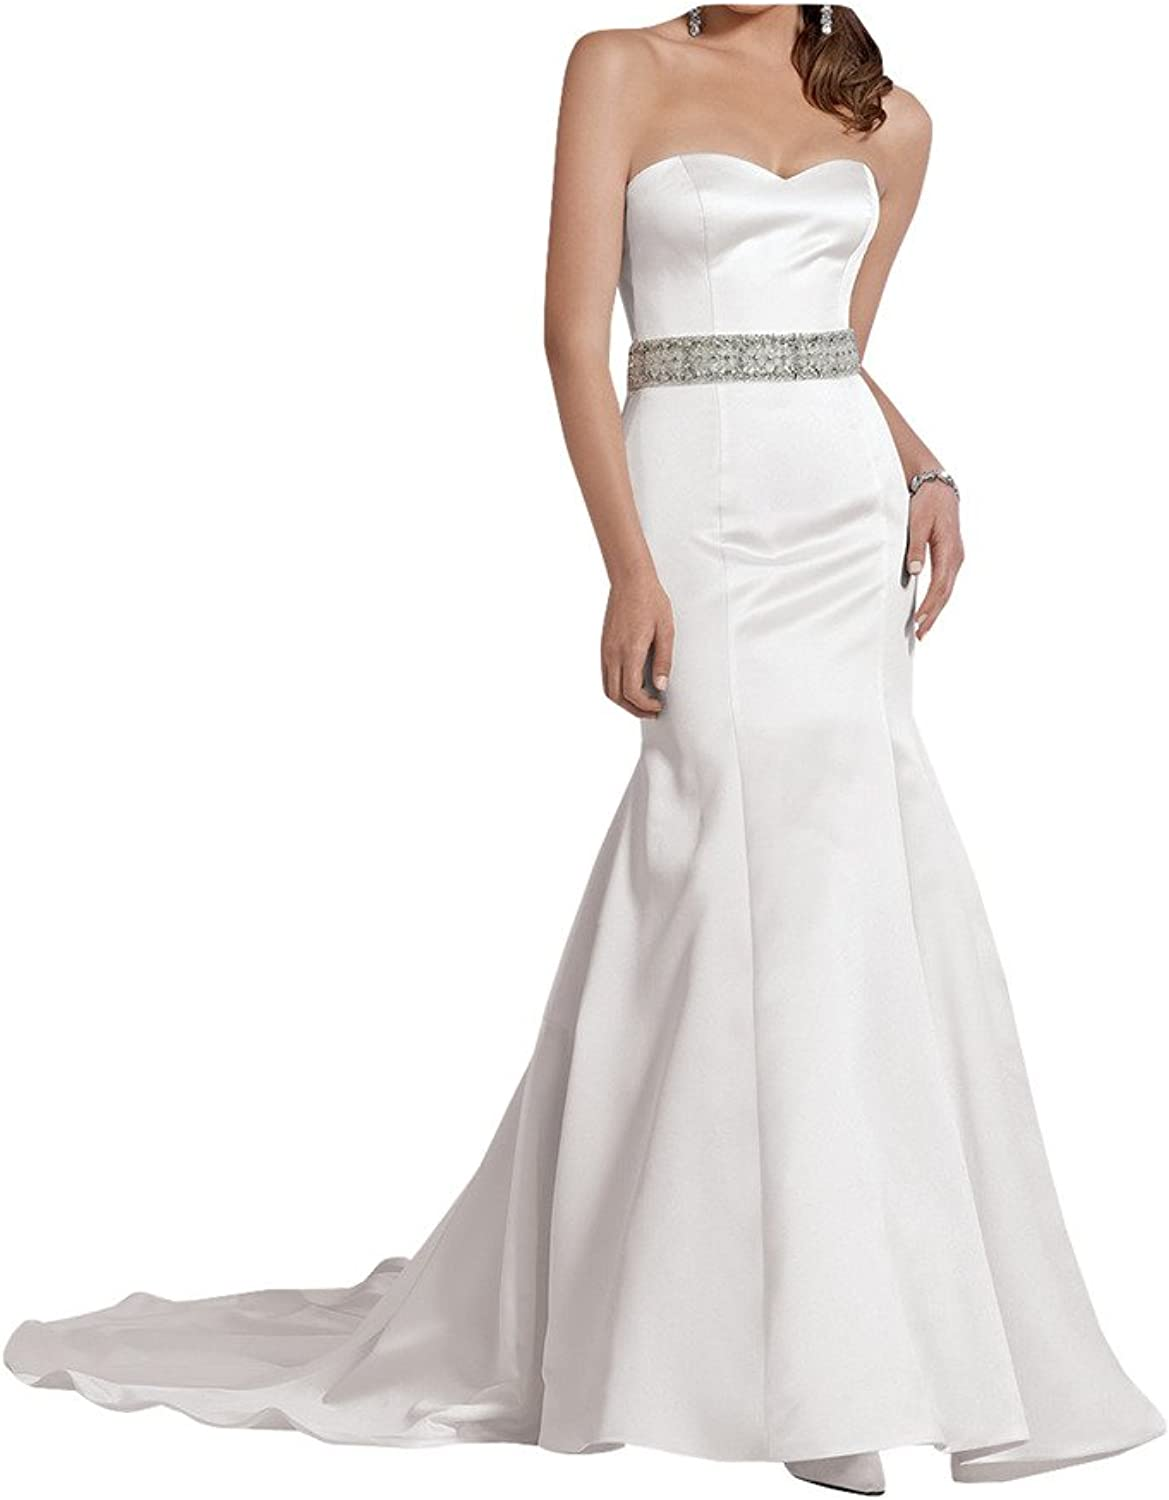 La Mariee Sweetheart Satin Formal Party Dresses Wedding Dress with beading sash